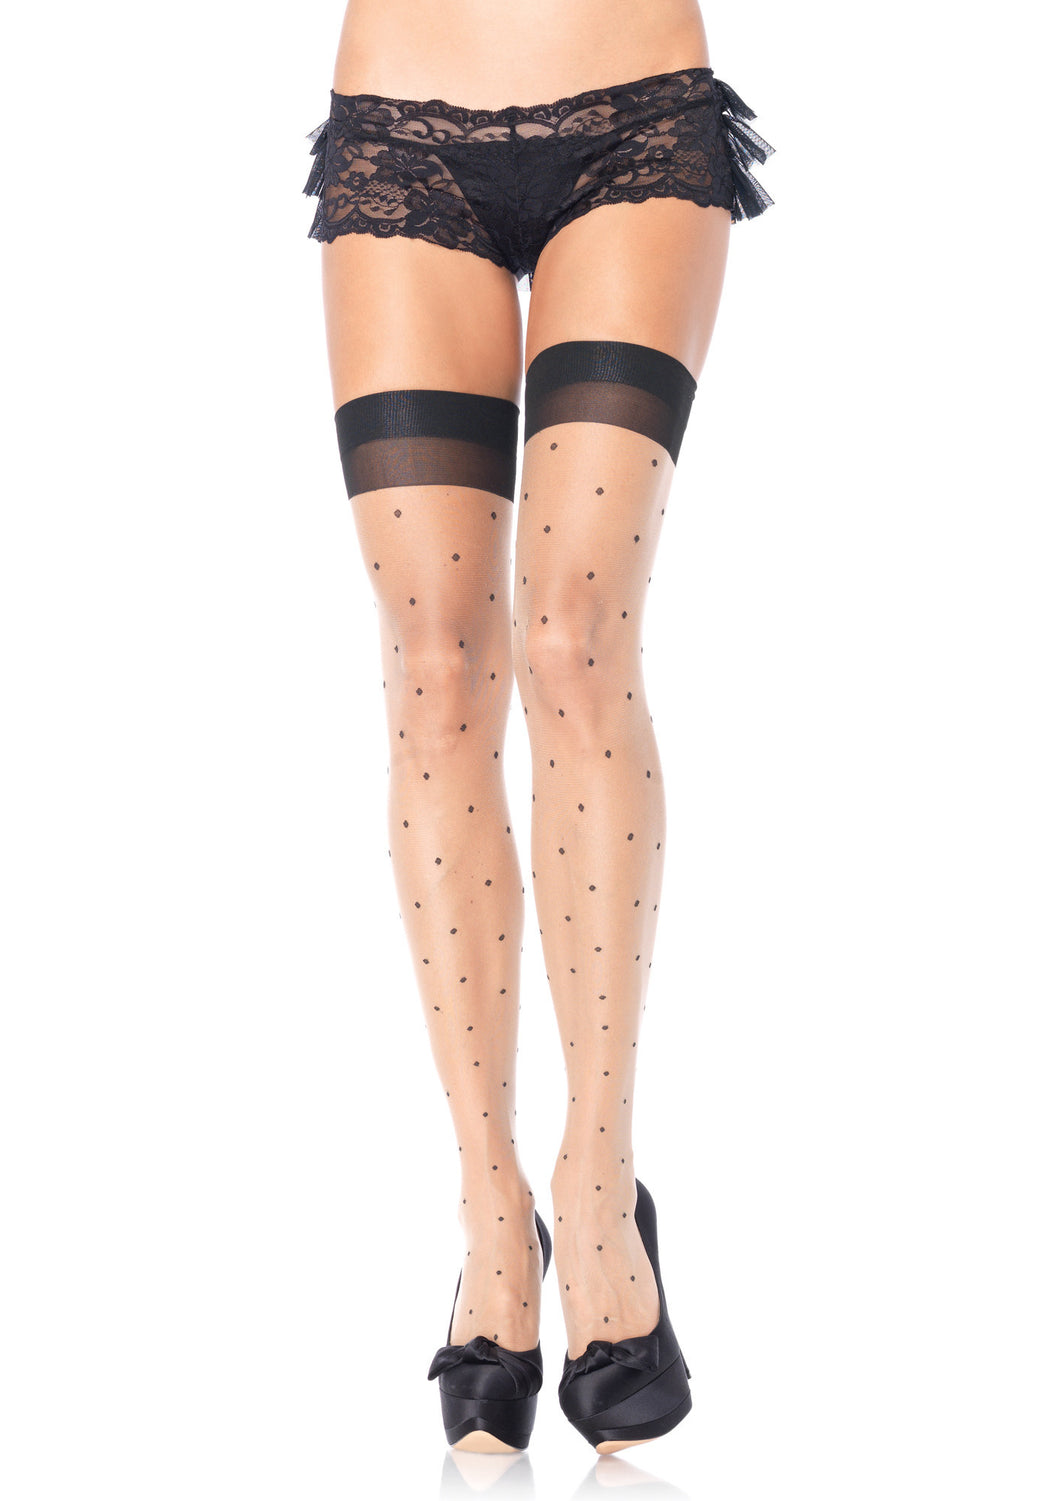 Polka Dot Spandex Sheer Thigh Highs W/Cuban Heel